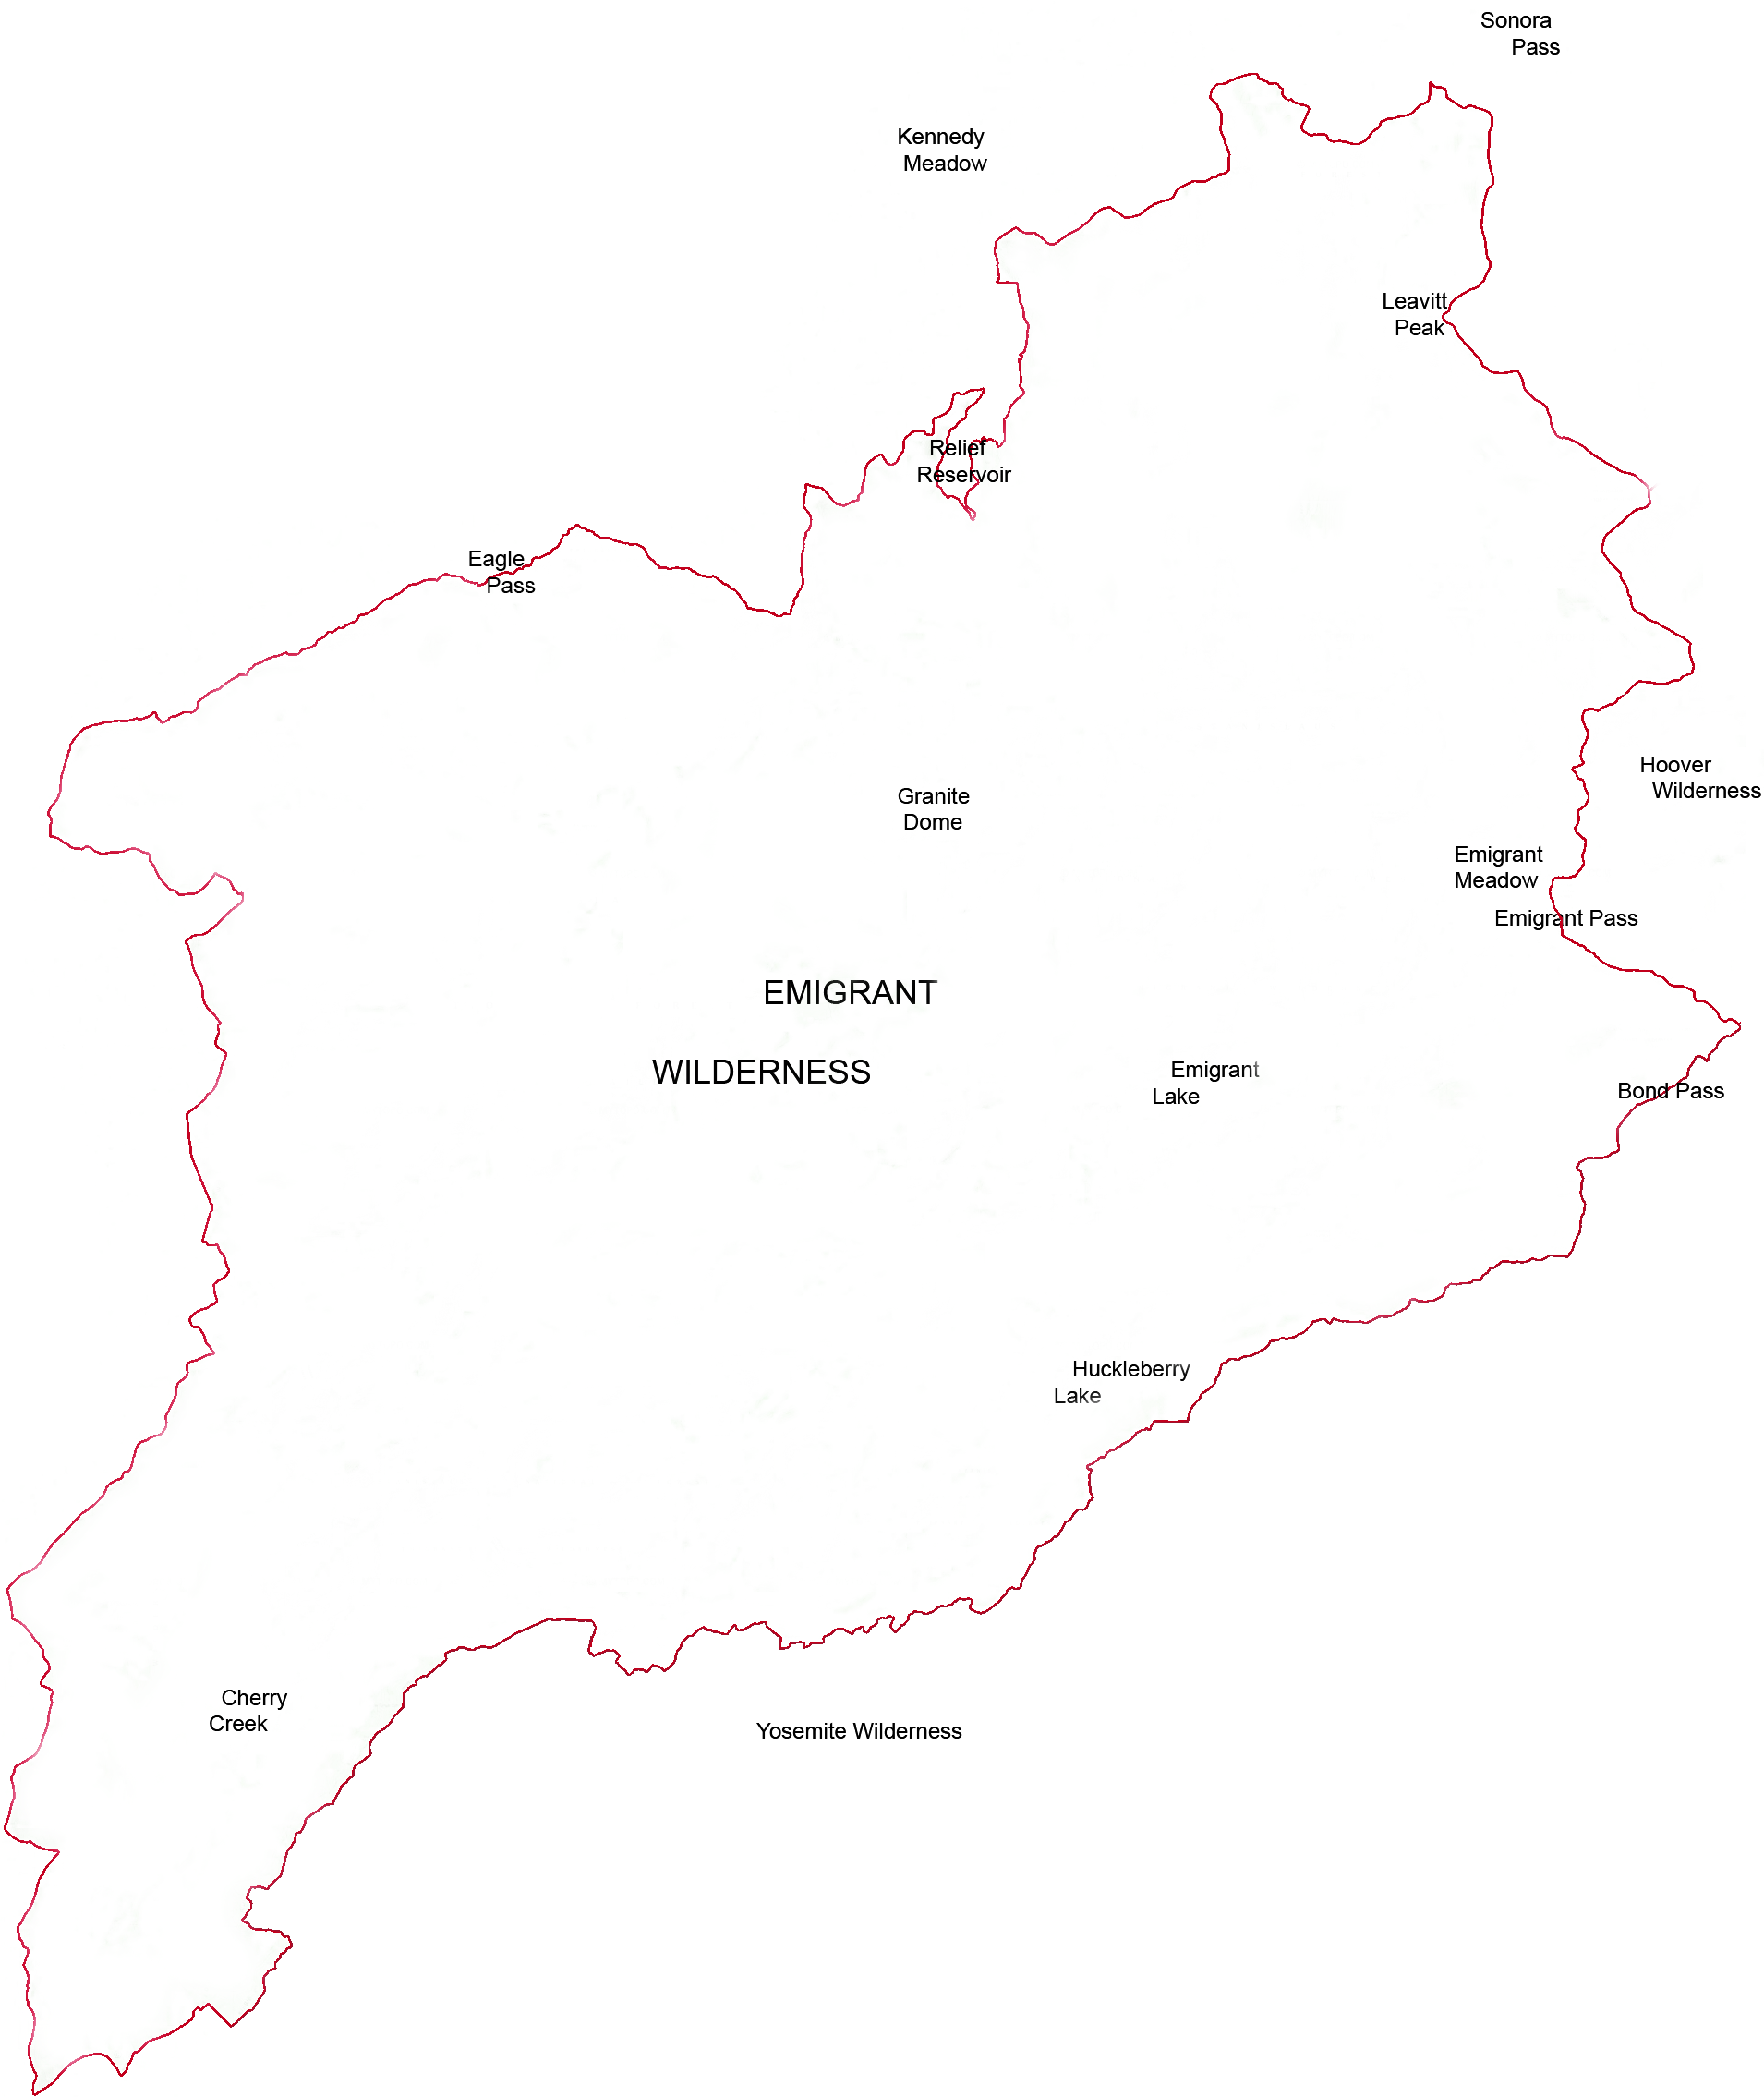 File:Emigrant Wilderness outline map.png - Wikimedia Commons